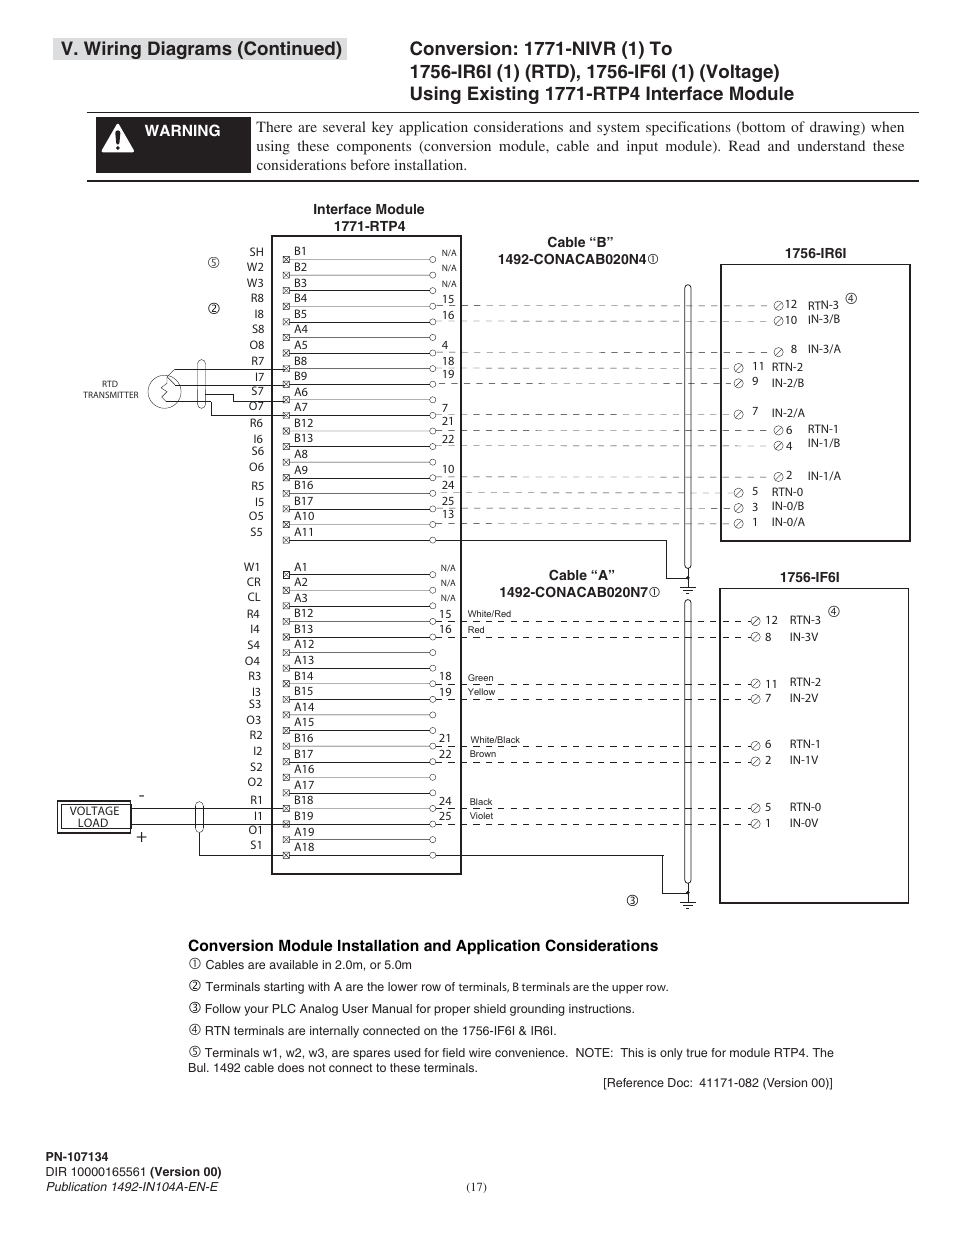 rockwell automation 1492 1771 n series i_o to 1756 controllogix i_o page17?resize\\\=665%2C861 mazda wiring diagram pdf efcaviation com on 2006 pt cruiser wiring 2006 pt cruiser wiring diagram pdf at mifinder.co